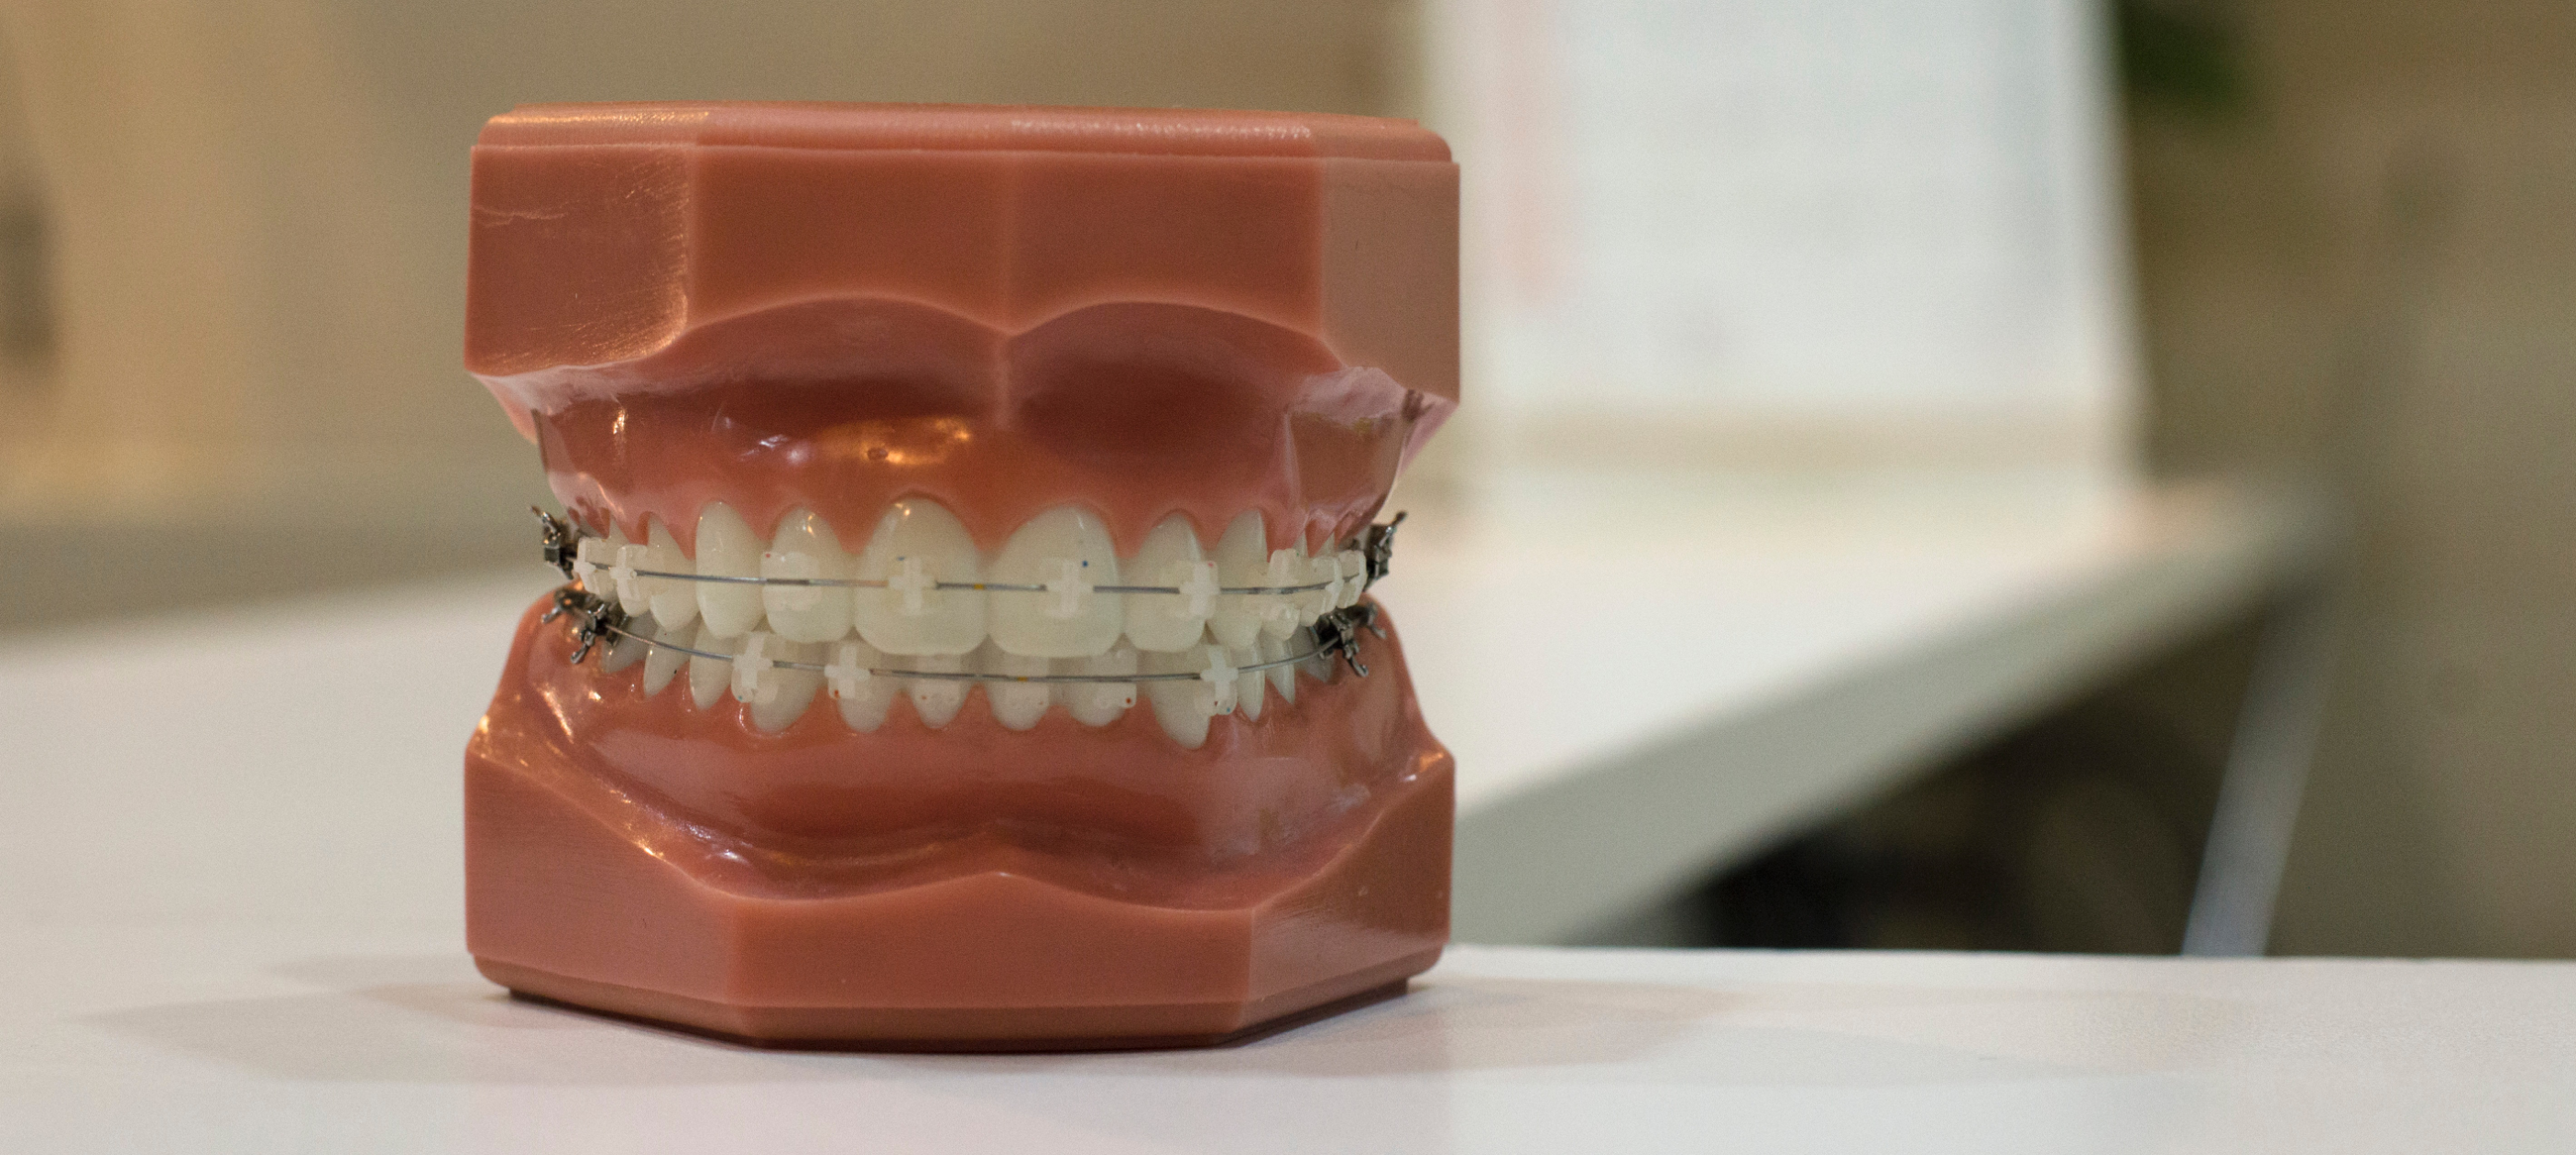 A model of teeth with braces.